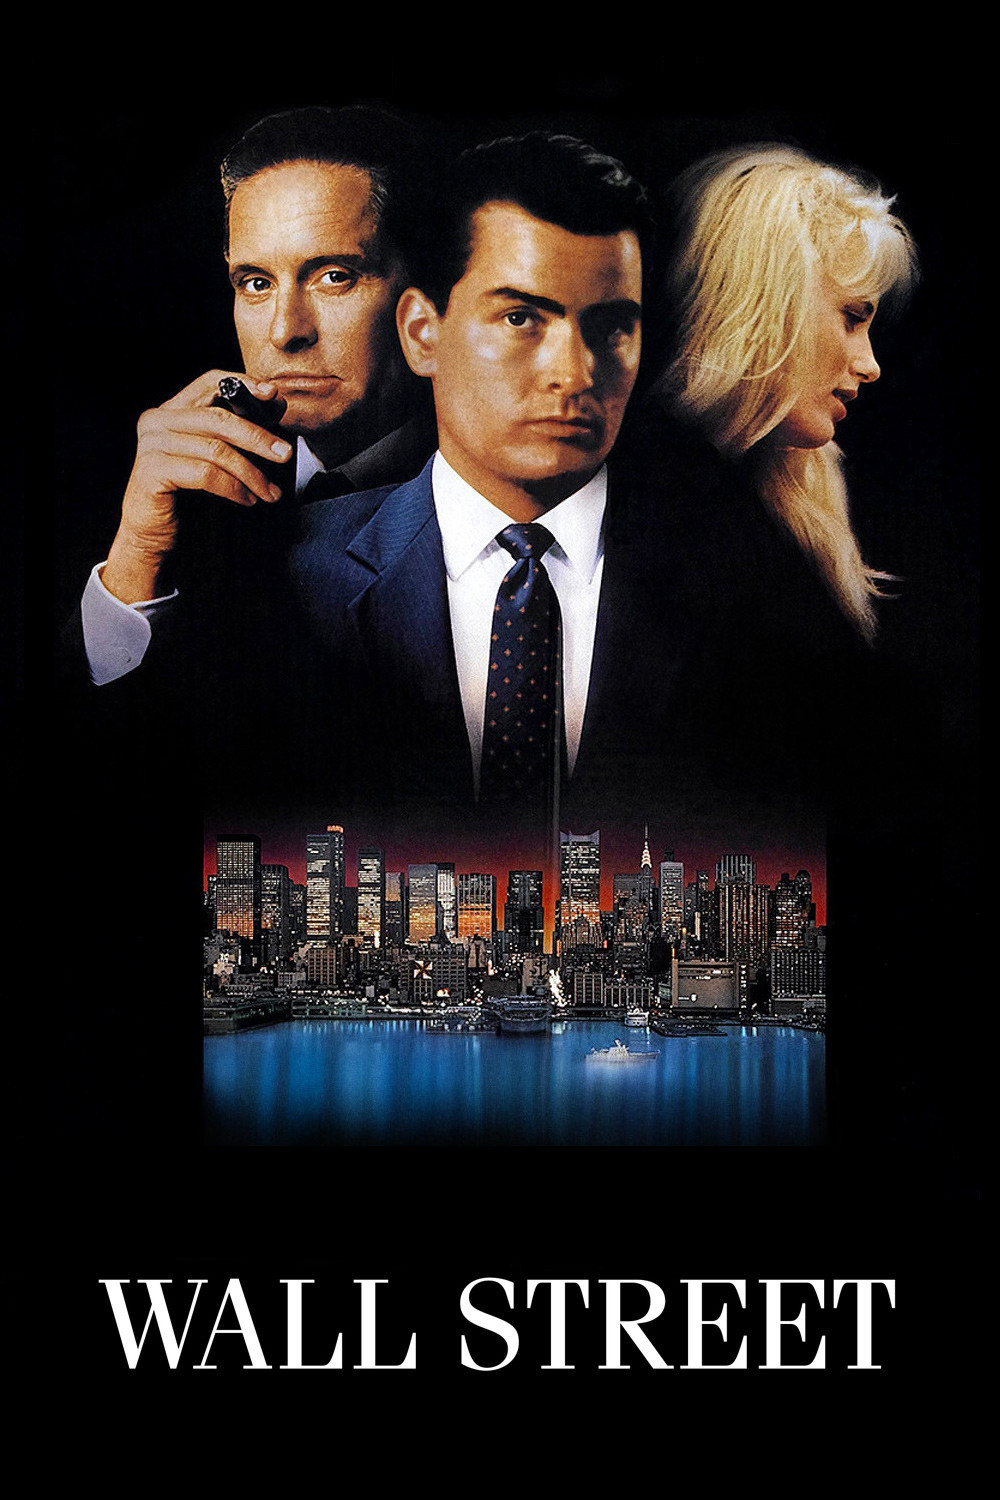 wall street movie Download wall street 1987 720p 1080p movie download hd popcorns, direct download 720p 1080p high quality movies just in single click from hdpopcorns.